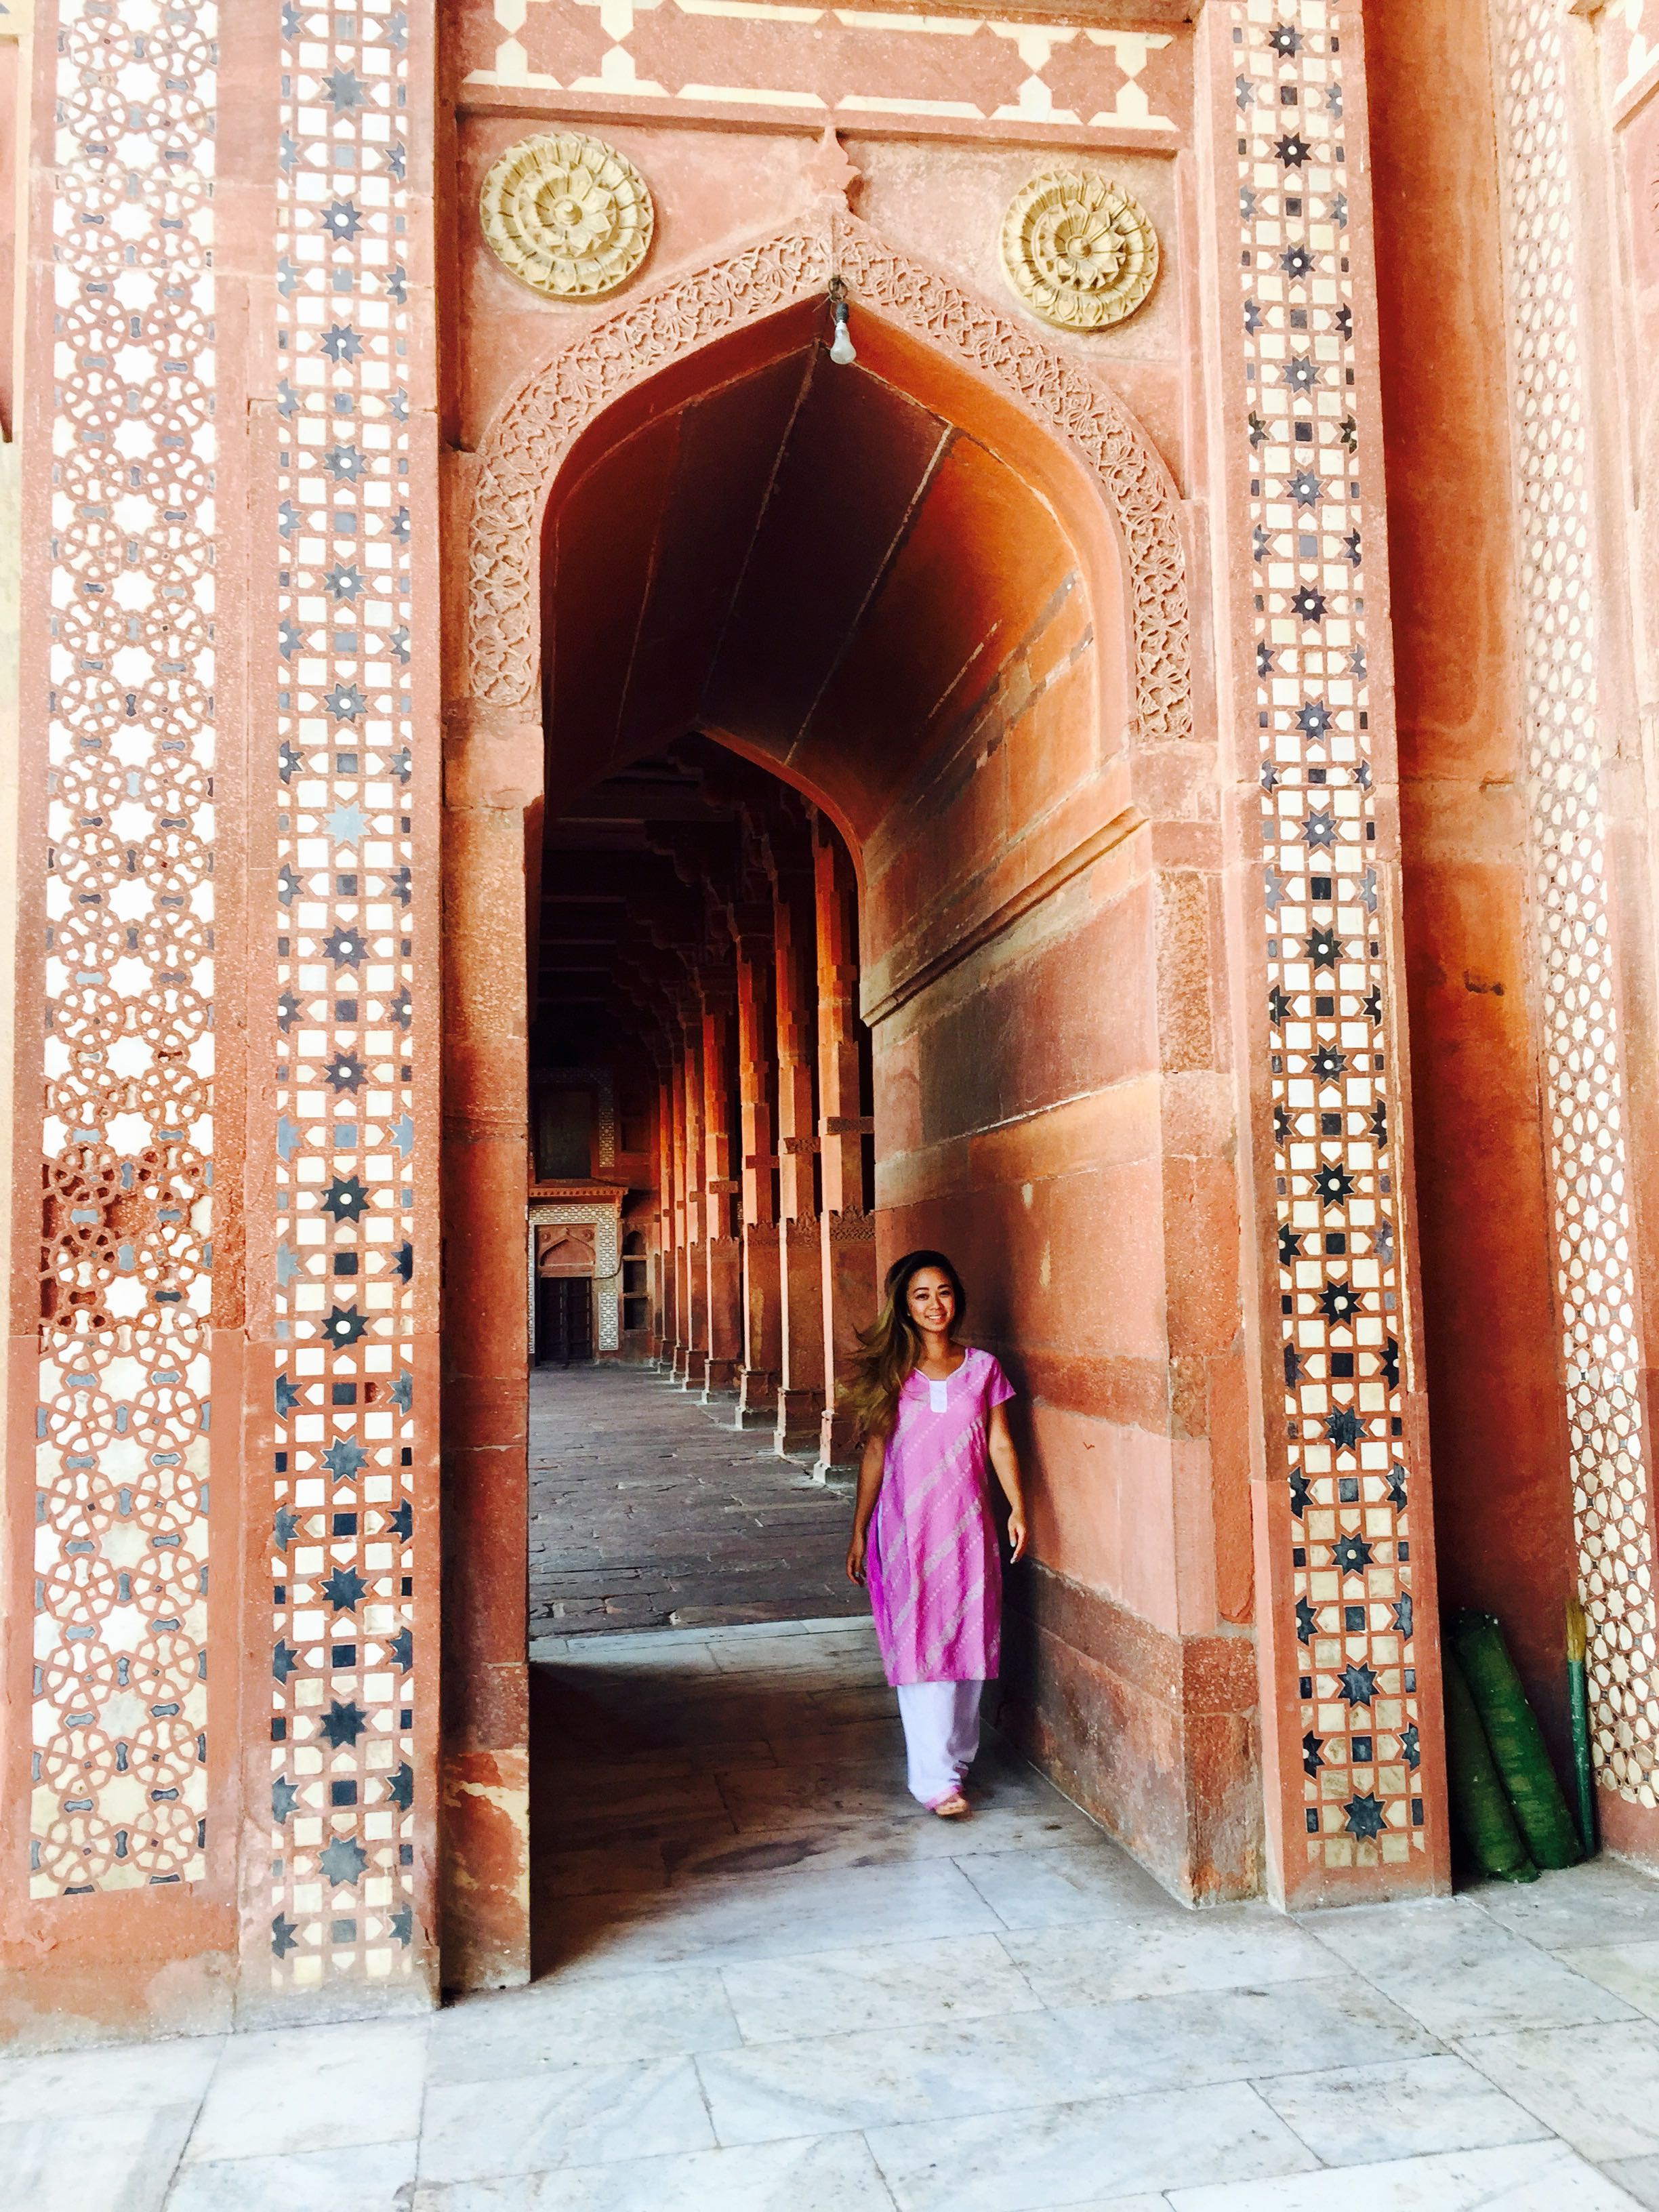 Fatehpur Sikri was a beautiful capital city in its time, but was abandoned right after construction was completed due to lack of water source!